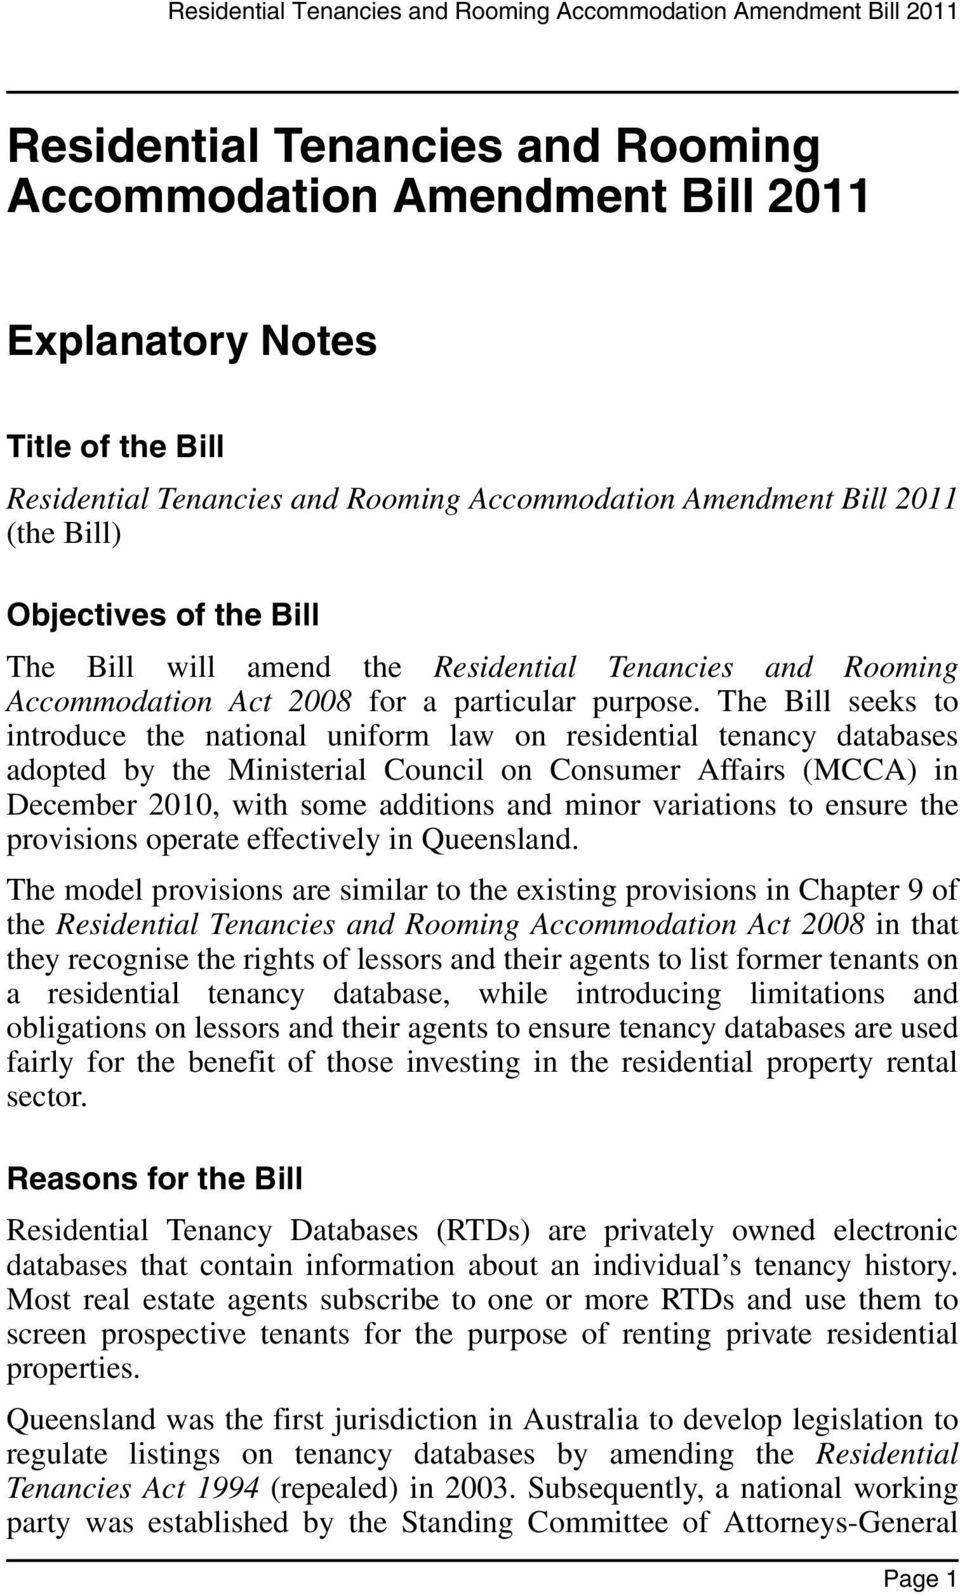 The Bill seeks to introduce the national uniform law on residential tenancy databases adopted by the Ministerial Council on Consumer Affairs (MCCA) in December 2010, with some additions and minor